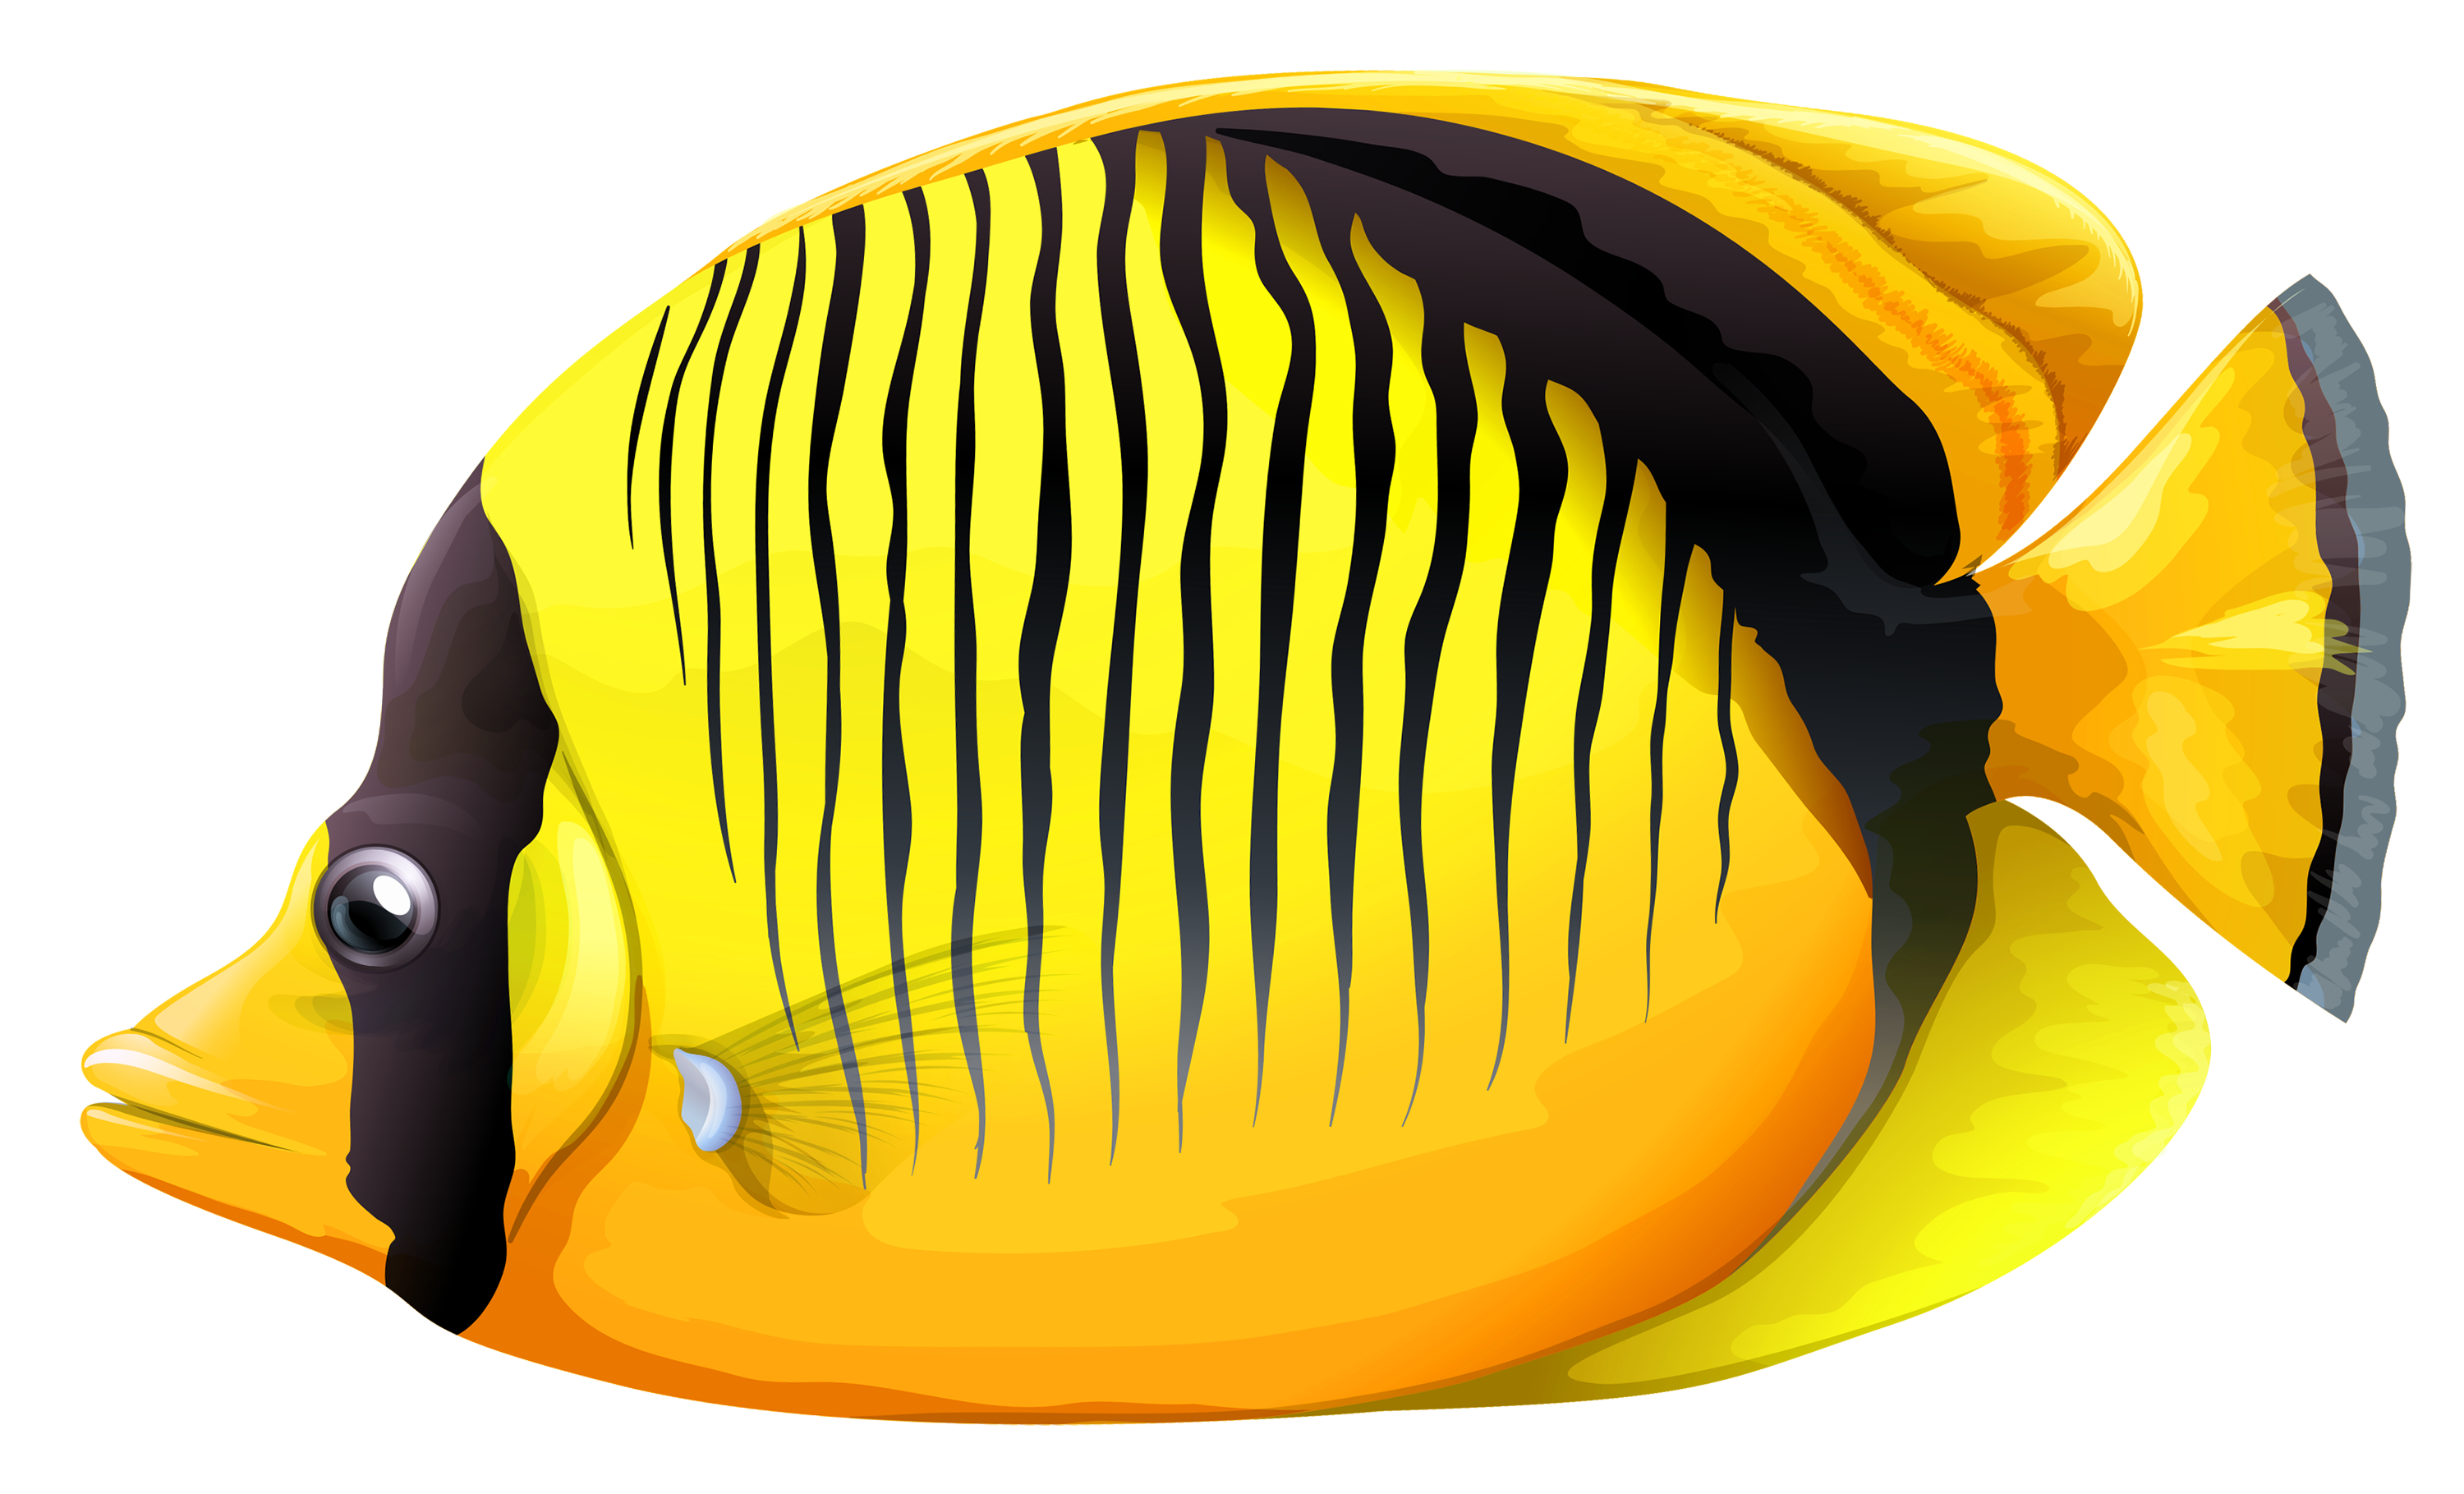 Yellow fish background clipart banner freeuse library Yellow Butterfly Fish PNG Clipart - Best WEB Clipart banner freeuse library